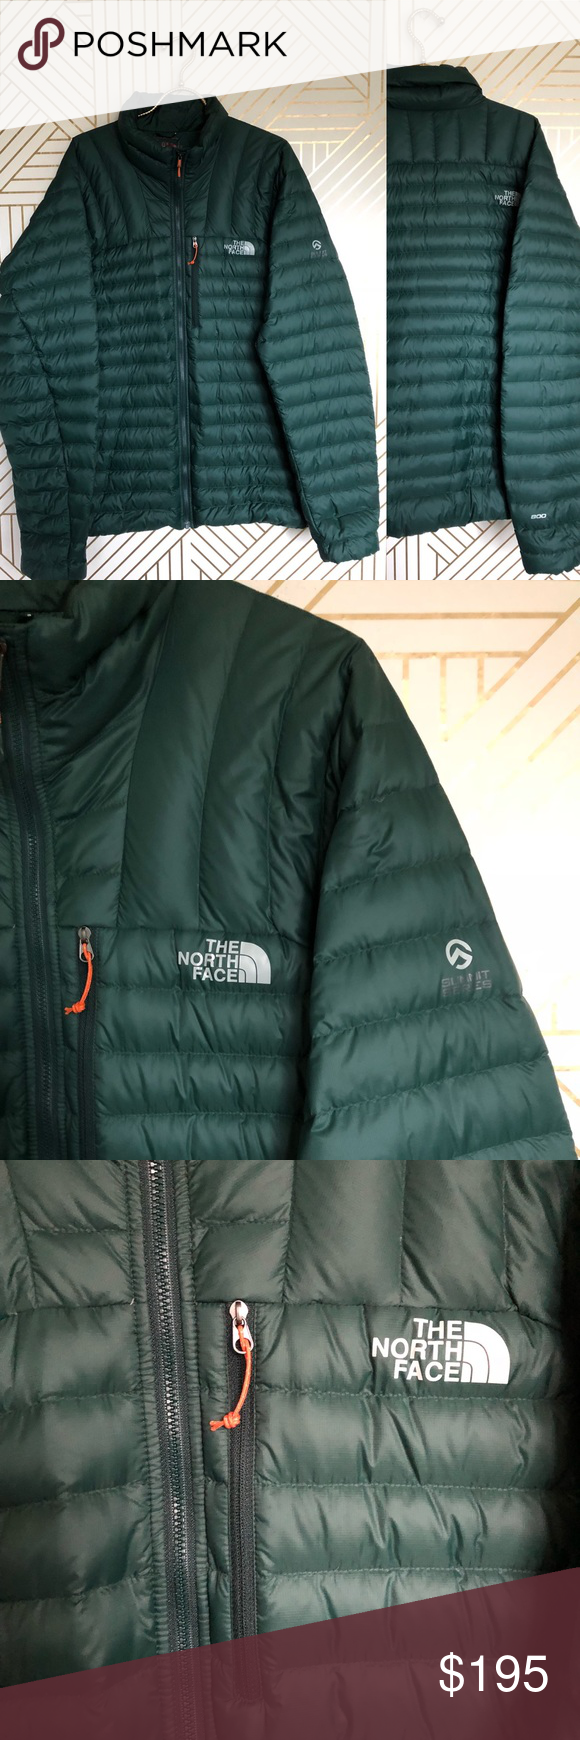 The North Face Summit 800 Series Down Jacket Xl The North Face Down Jacket North Face Jacket [ 1740 x 580 Pixel ]